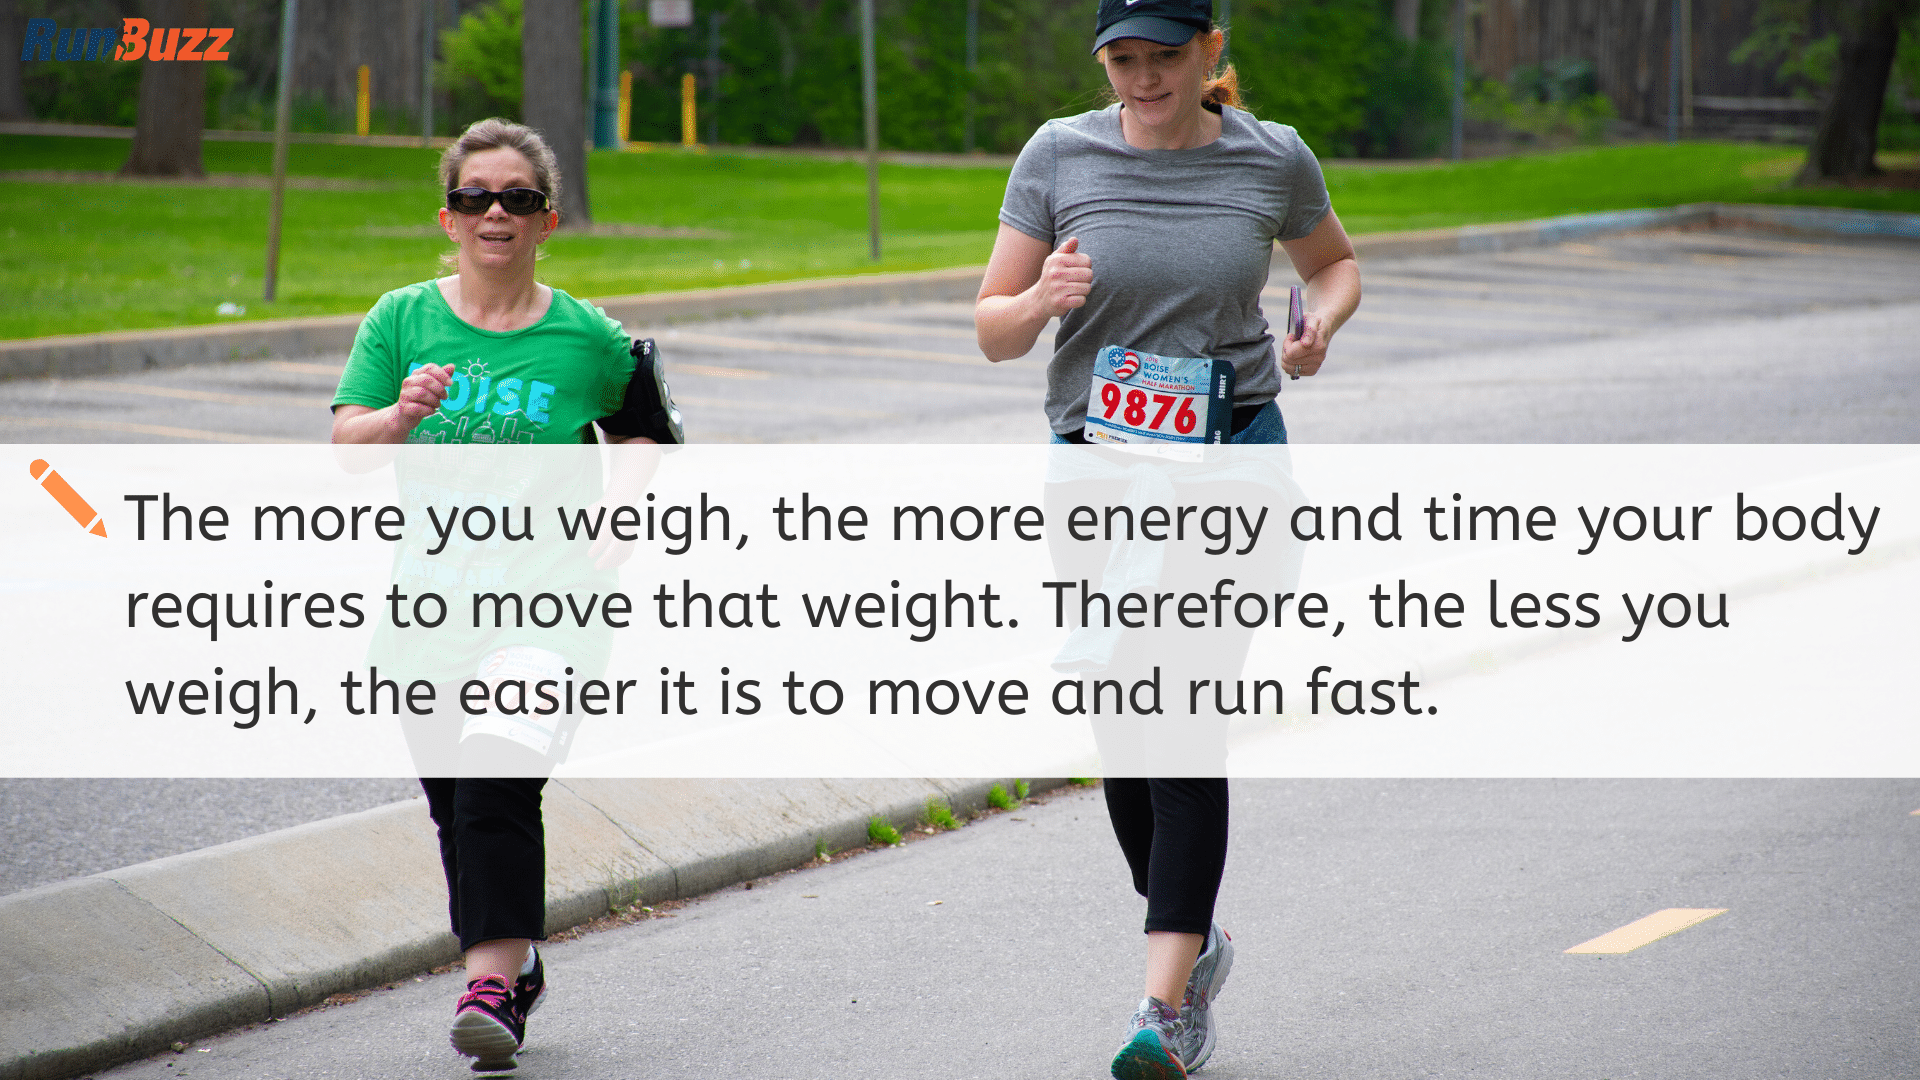 Excess-Body-Weight-Impacts-Running-Performance